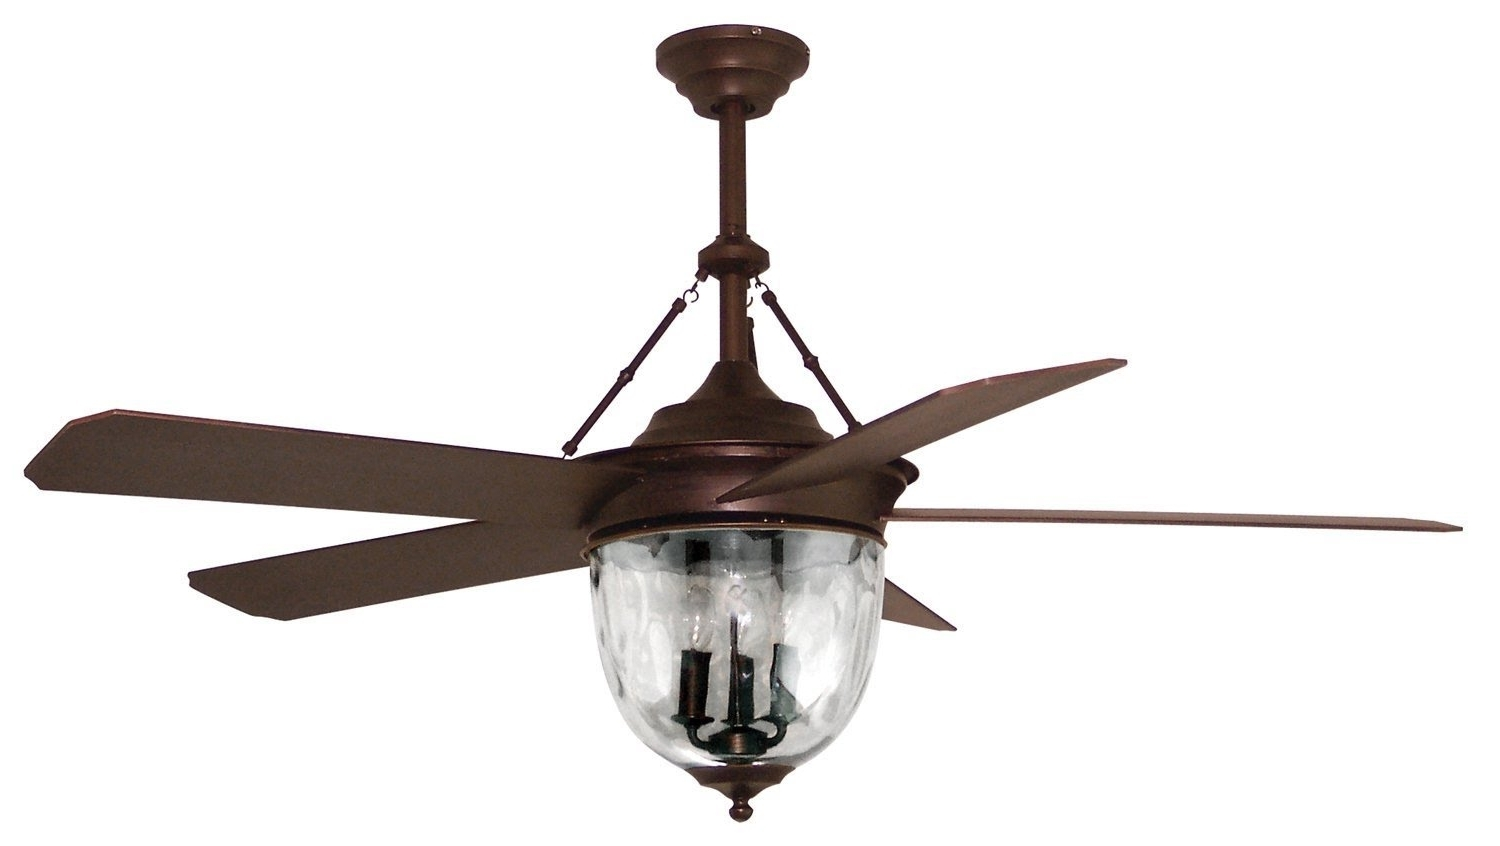 Outdoor Ceiling Fan With Light And Remote Fresh Lowes Ceiling Fans Regarding Well Known Outdoor Ceiling Fans With Lights And Remote Control (View 13 of 20)